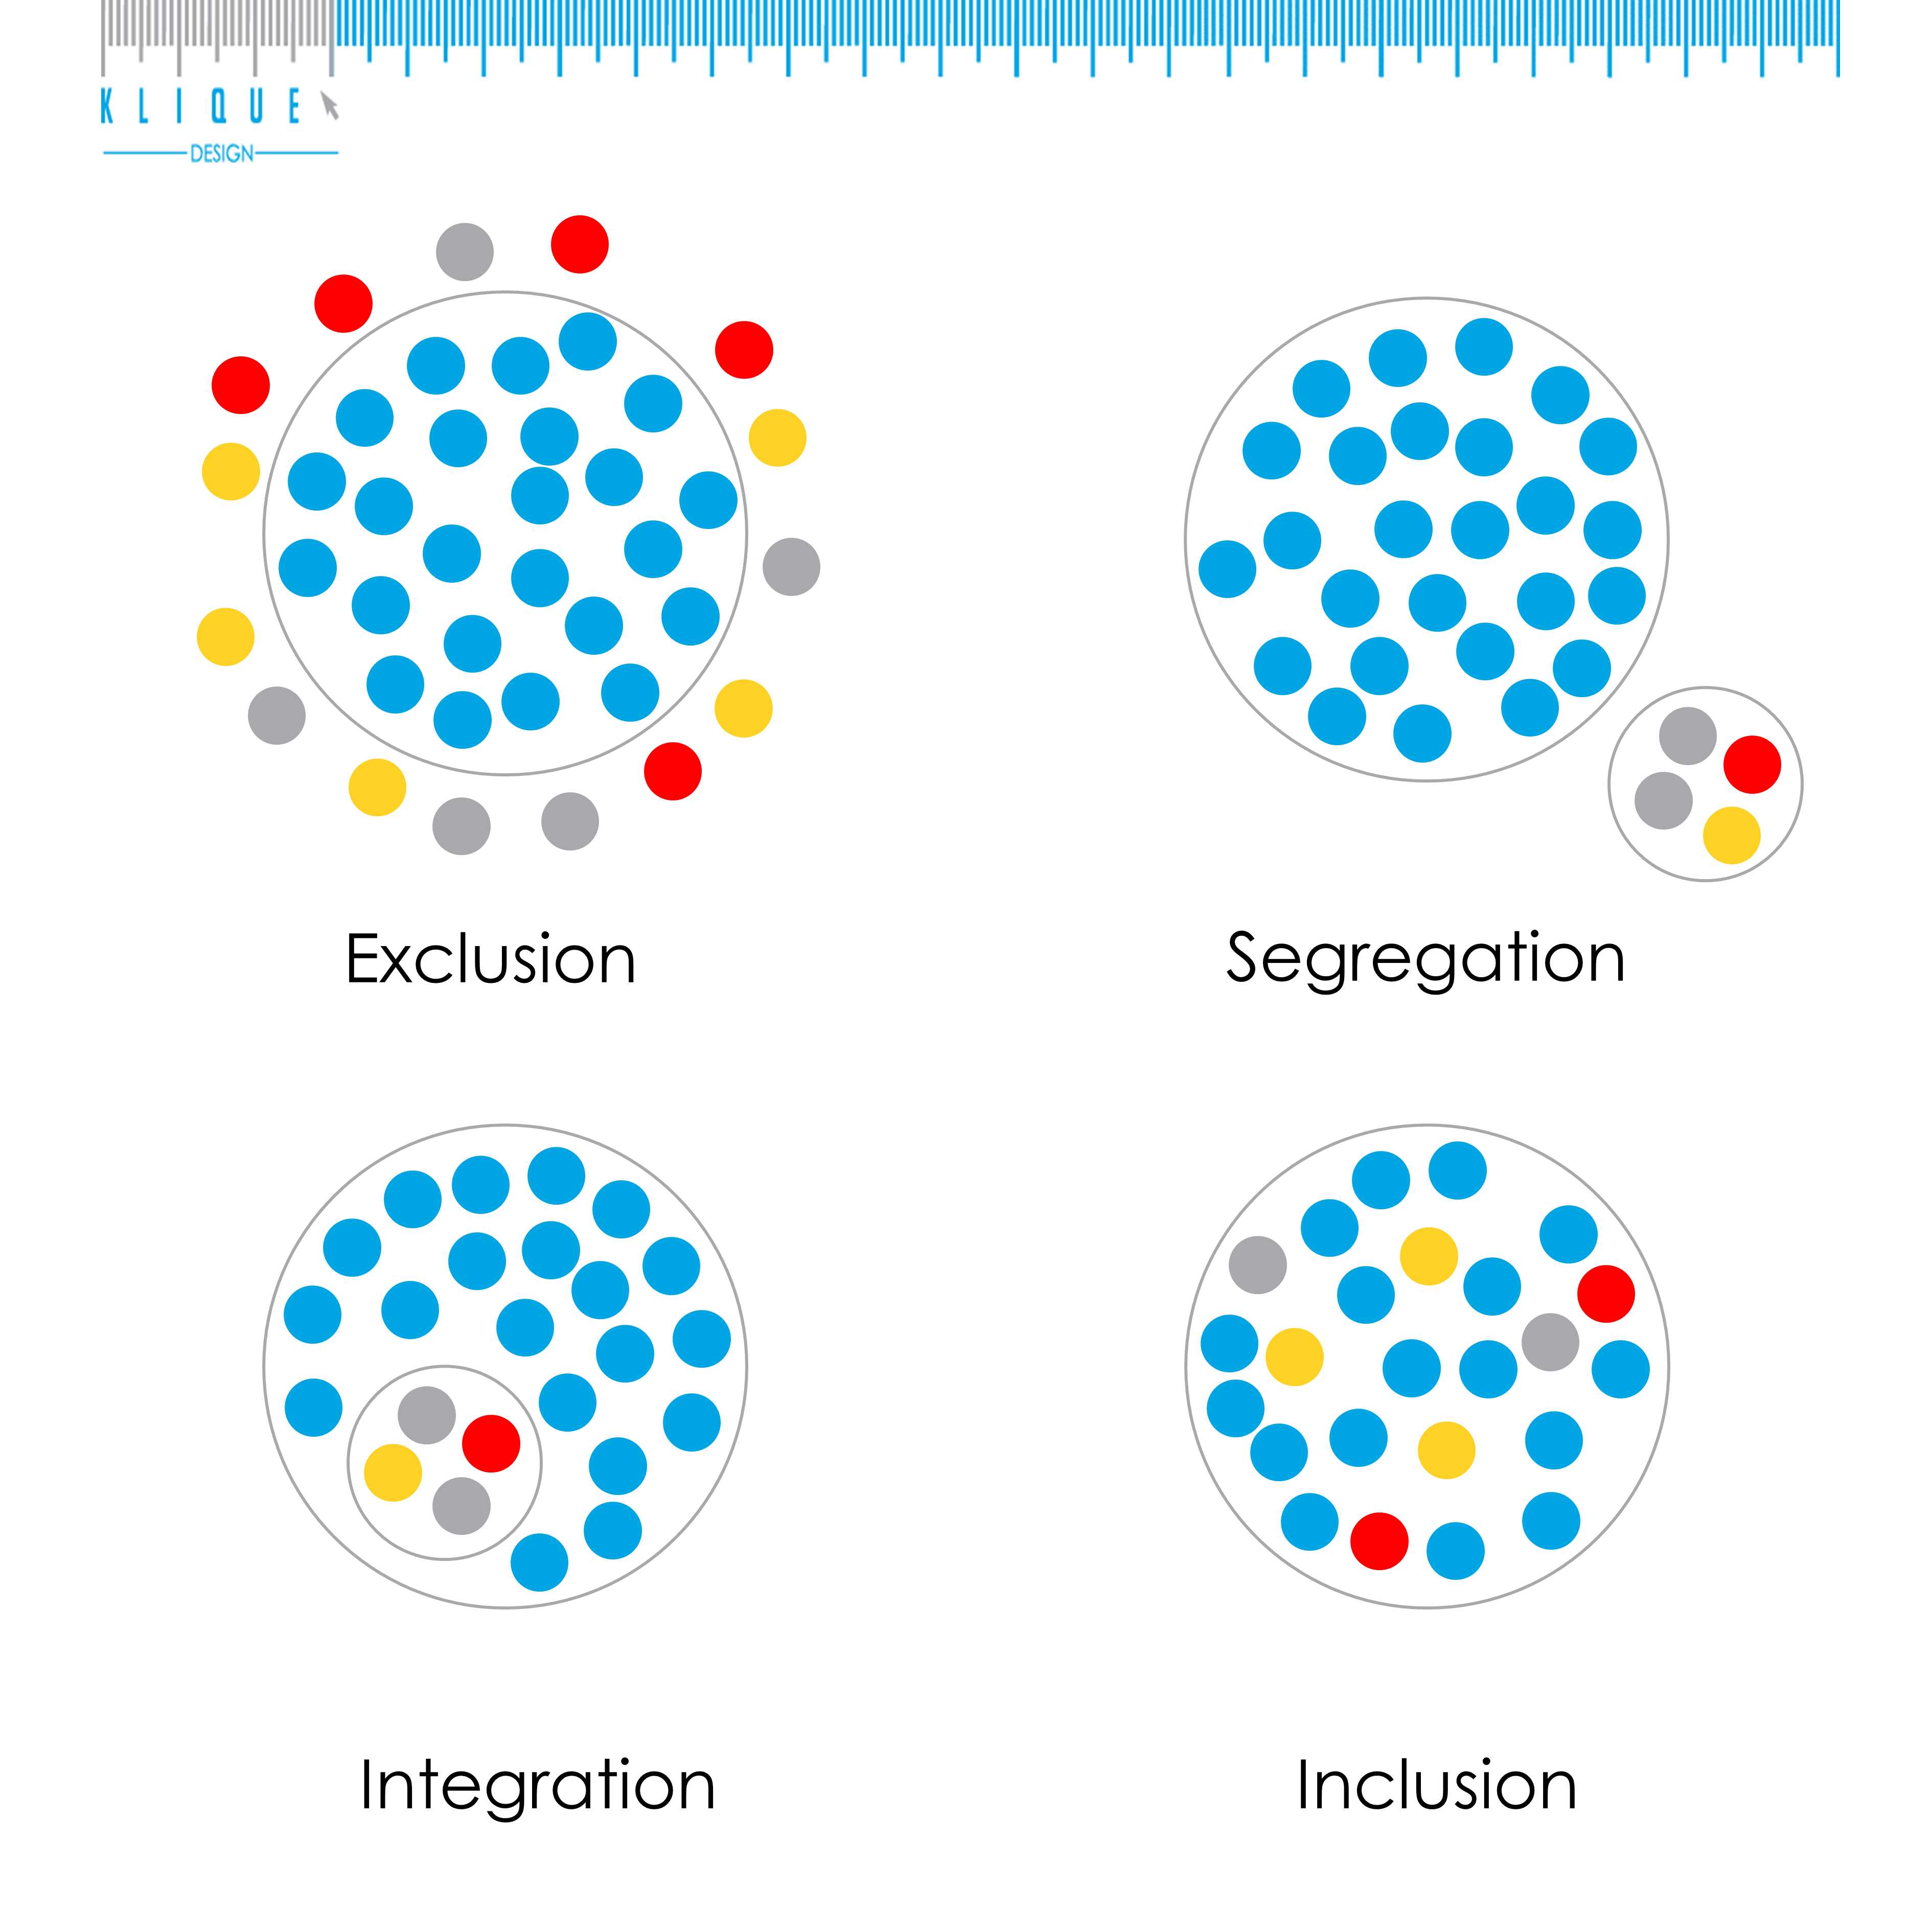 """Pictorial illustration for the meaning of """"Exclusion"""", """"Segregation"""", """"Integration"""" and """"Inclusion""""."""